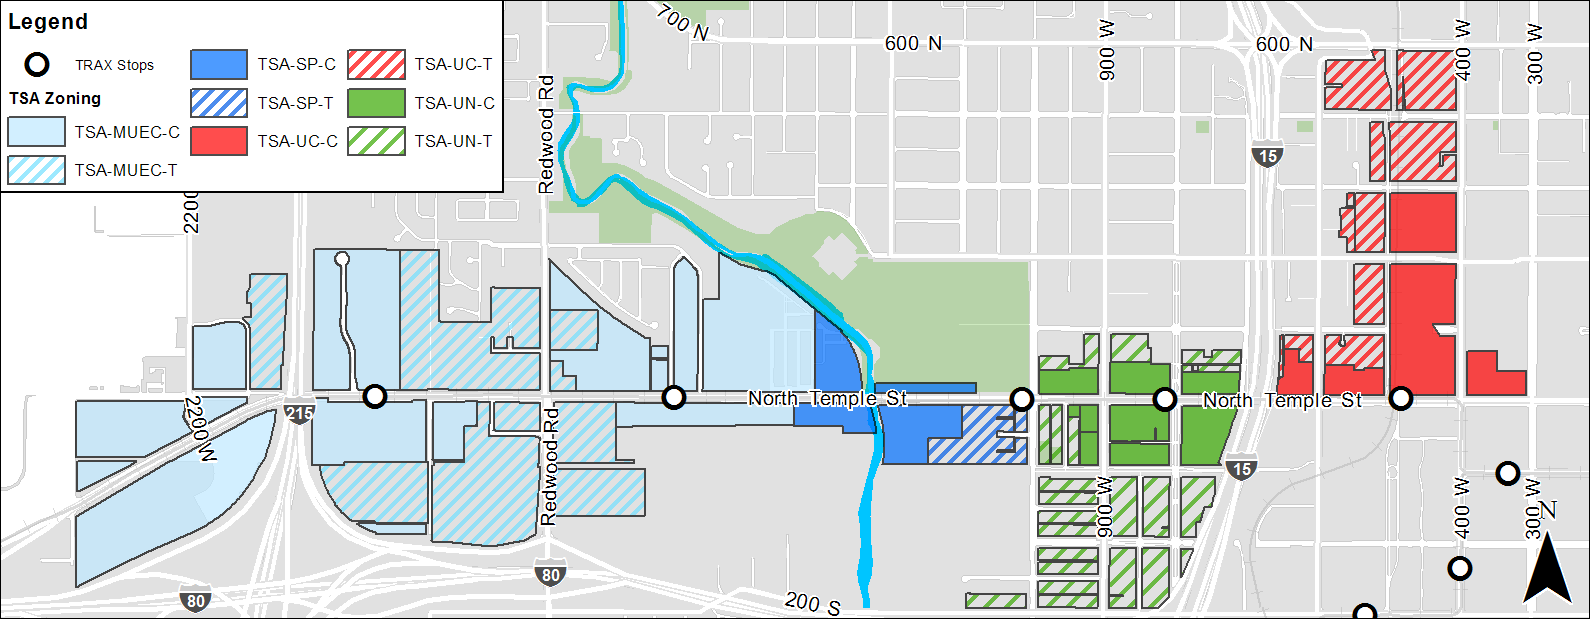 Salt Lake County, UT Zoning Map (PDF) and Zoning Code ...